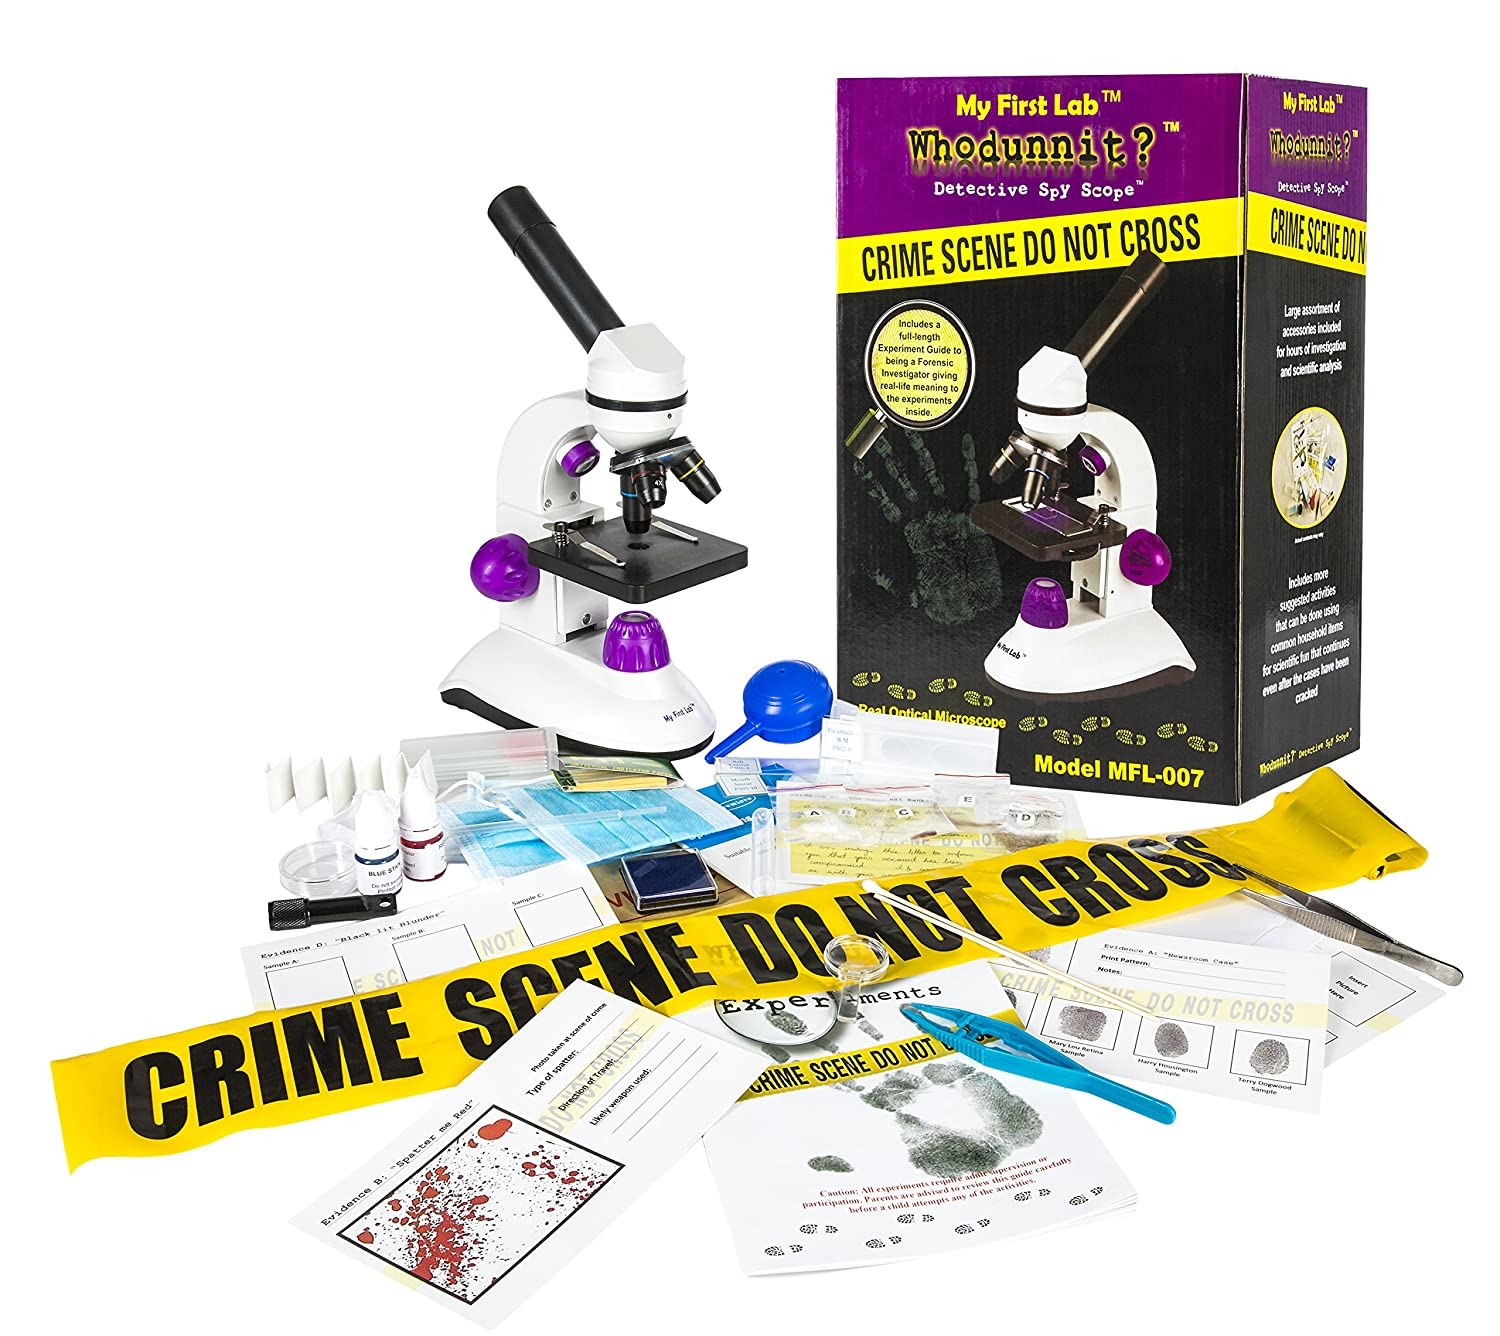 日本最大の C Spy and A Whodunnit Scientific My MFL-007 My First Lab Whodunnit Detective Spy Scope B00BI3LGJW, ペット用品専門店 卸ネット良品:f2c4a96d --- diceanalytics.pk